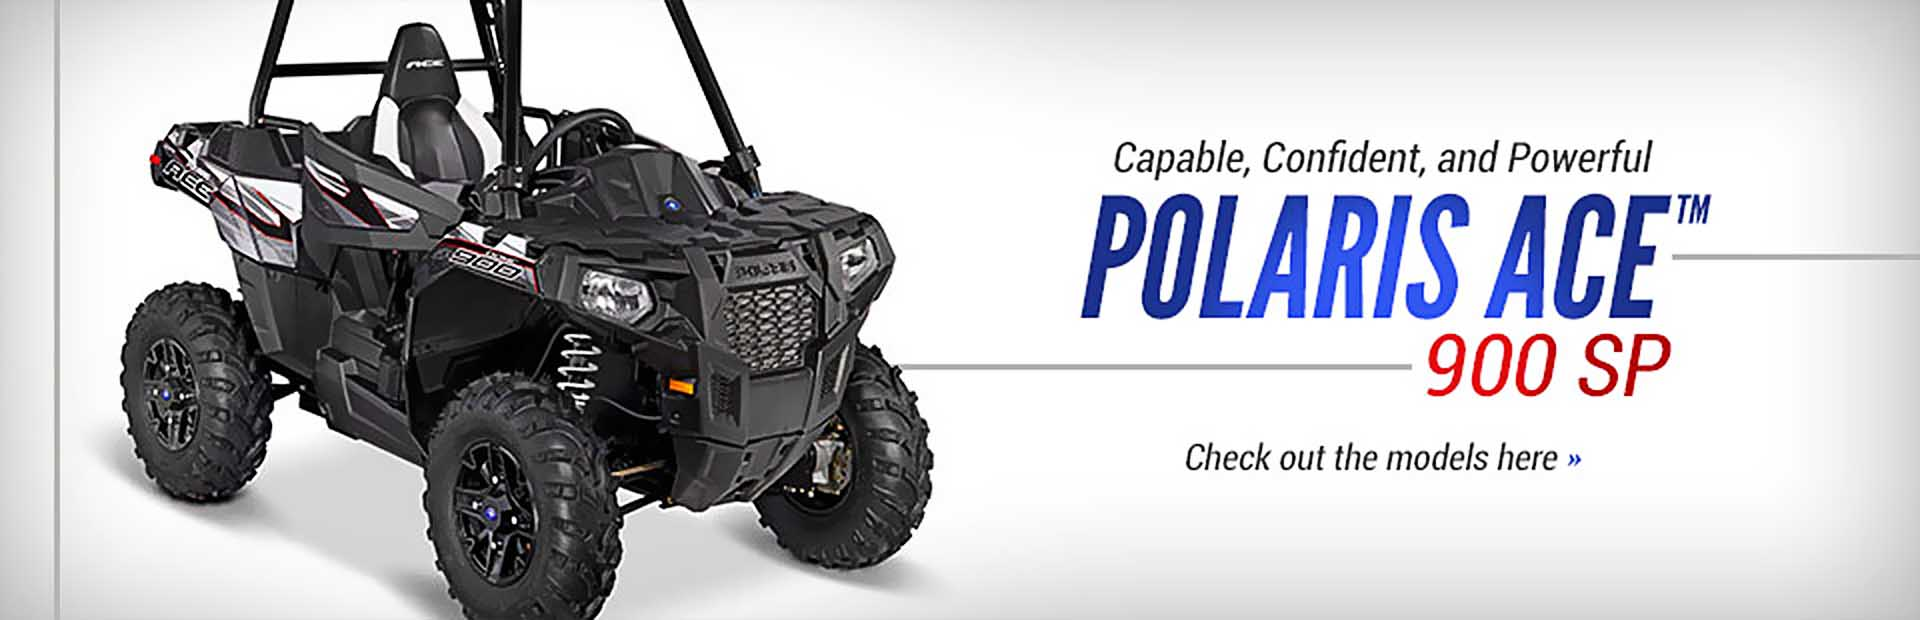 The Polaris ACE™ 900 SP is capable, confident, and powerful! Click here for details.